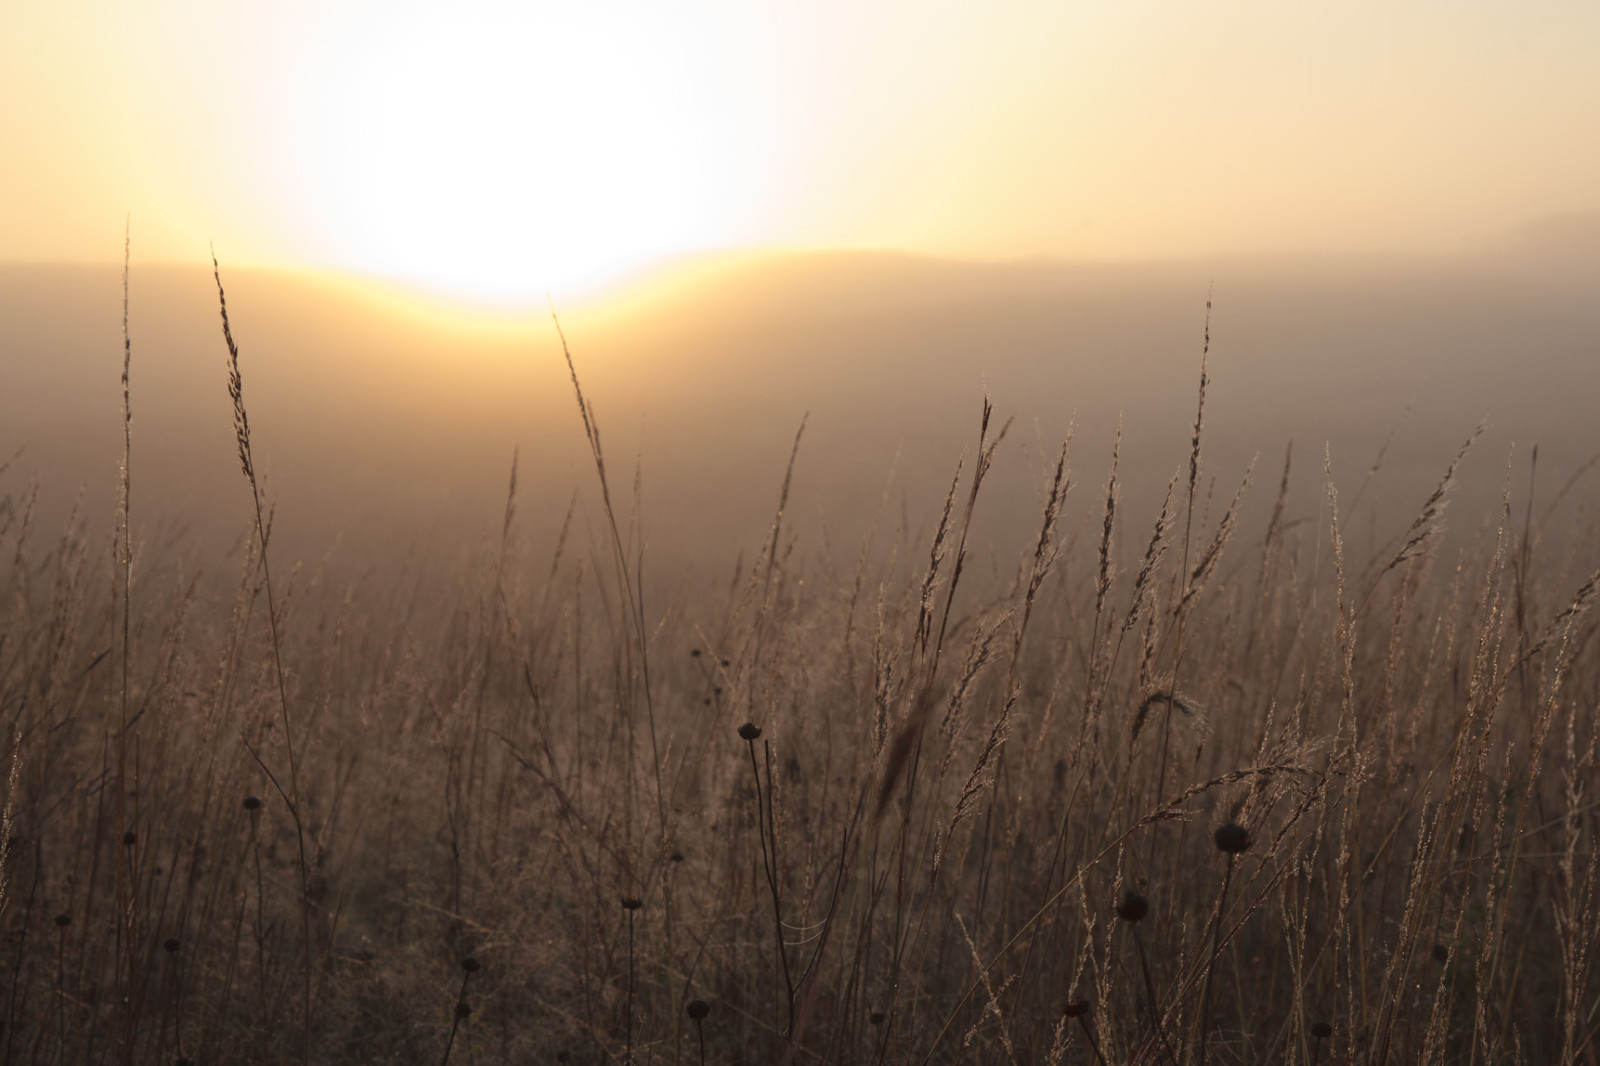 Sunrise on a foggy morning at The Nature Conservancy's Platte River Prairies. (Evan Barrientos)